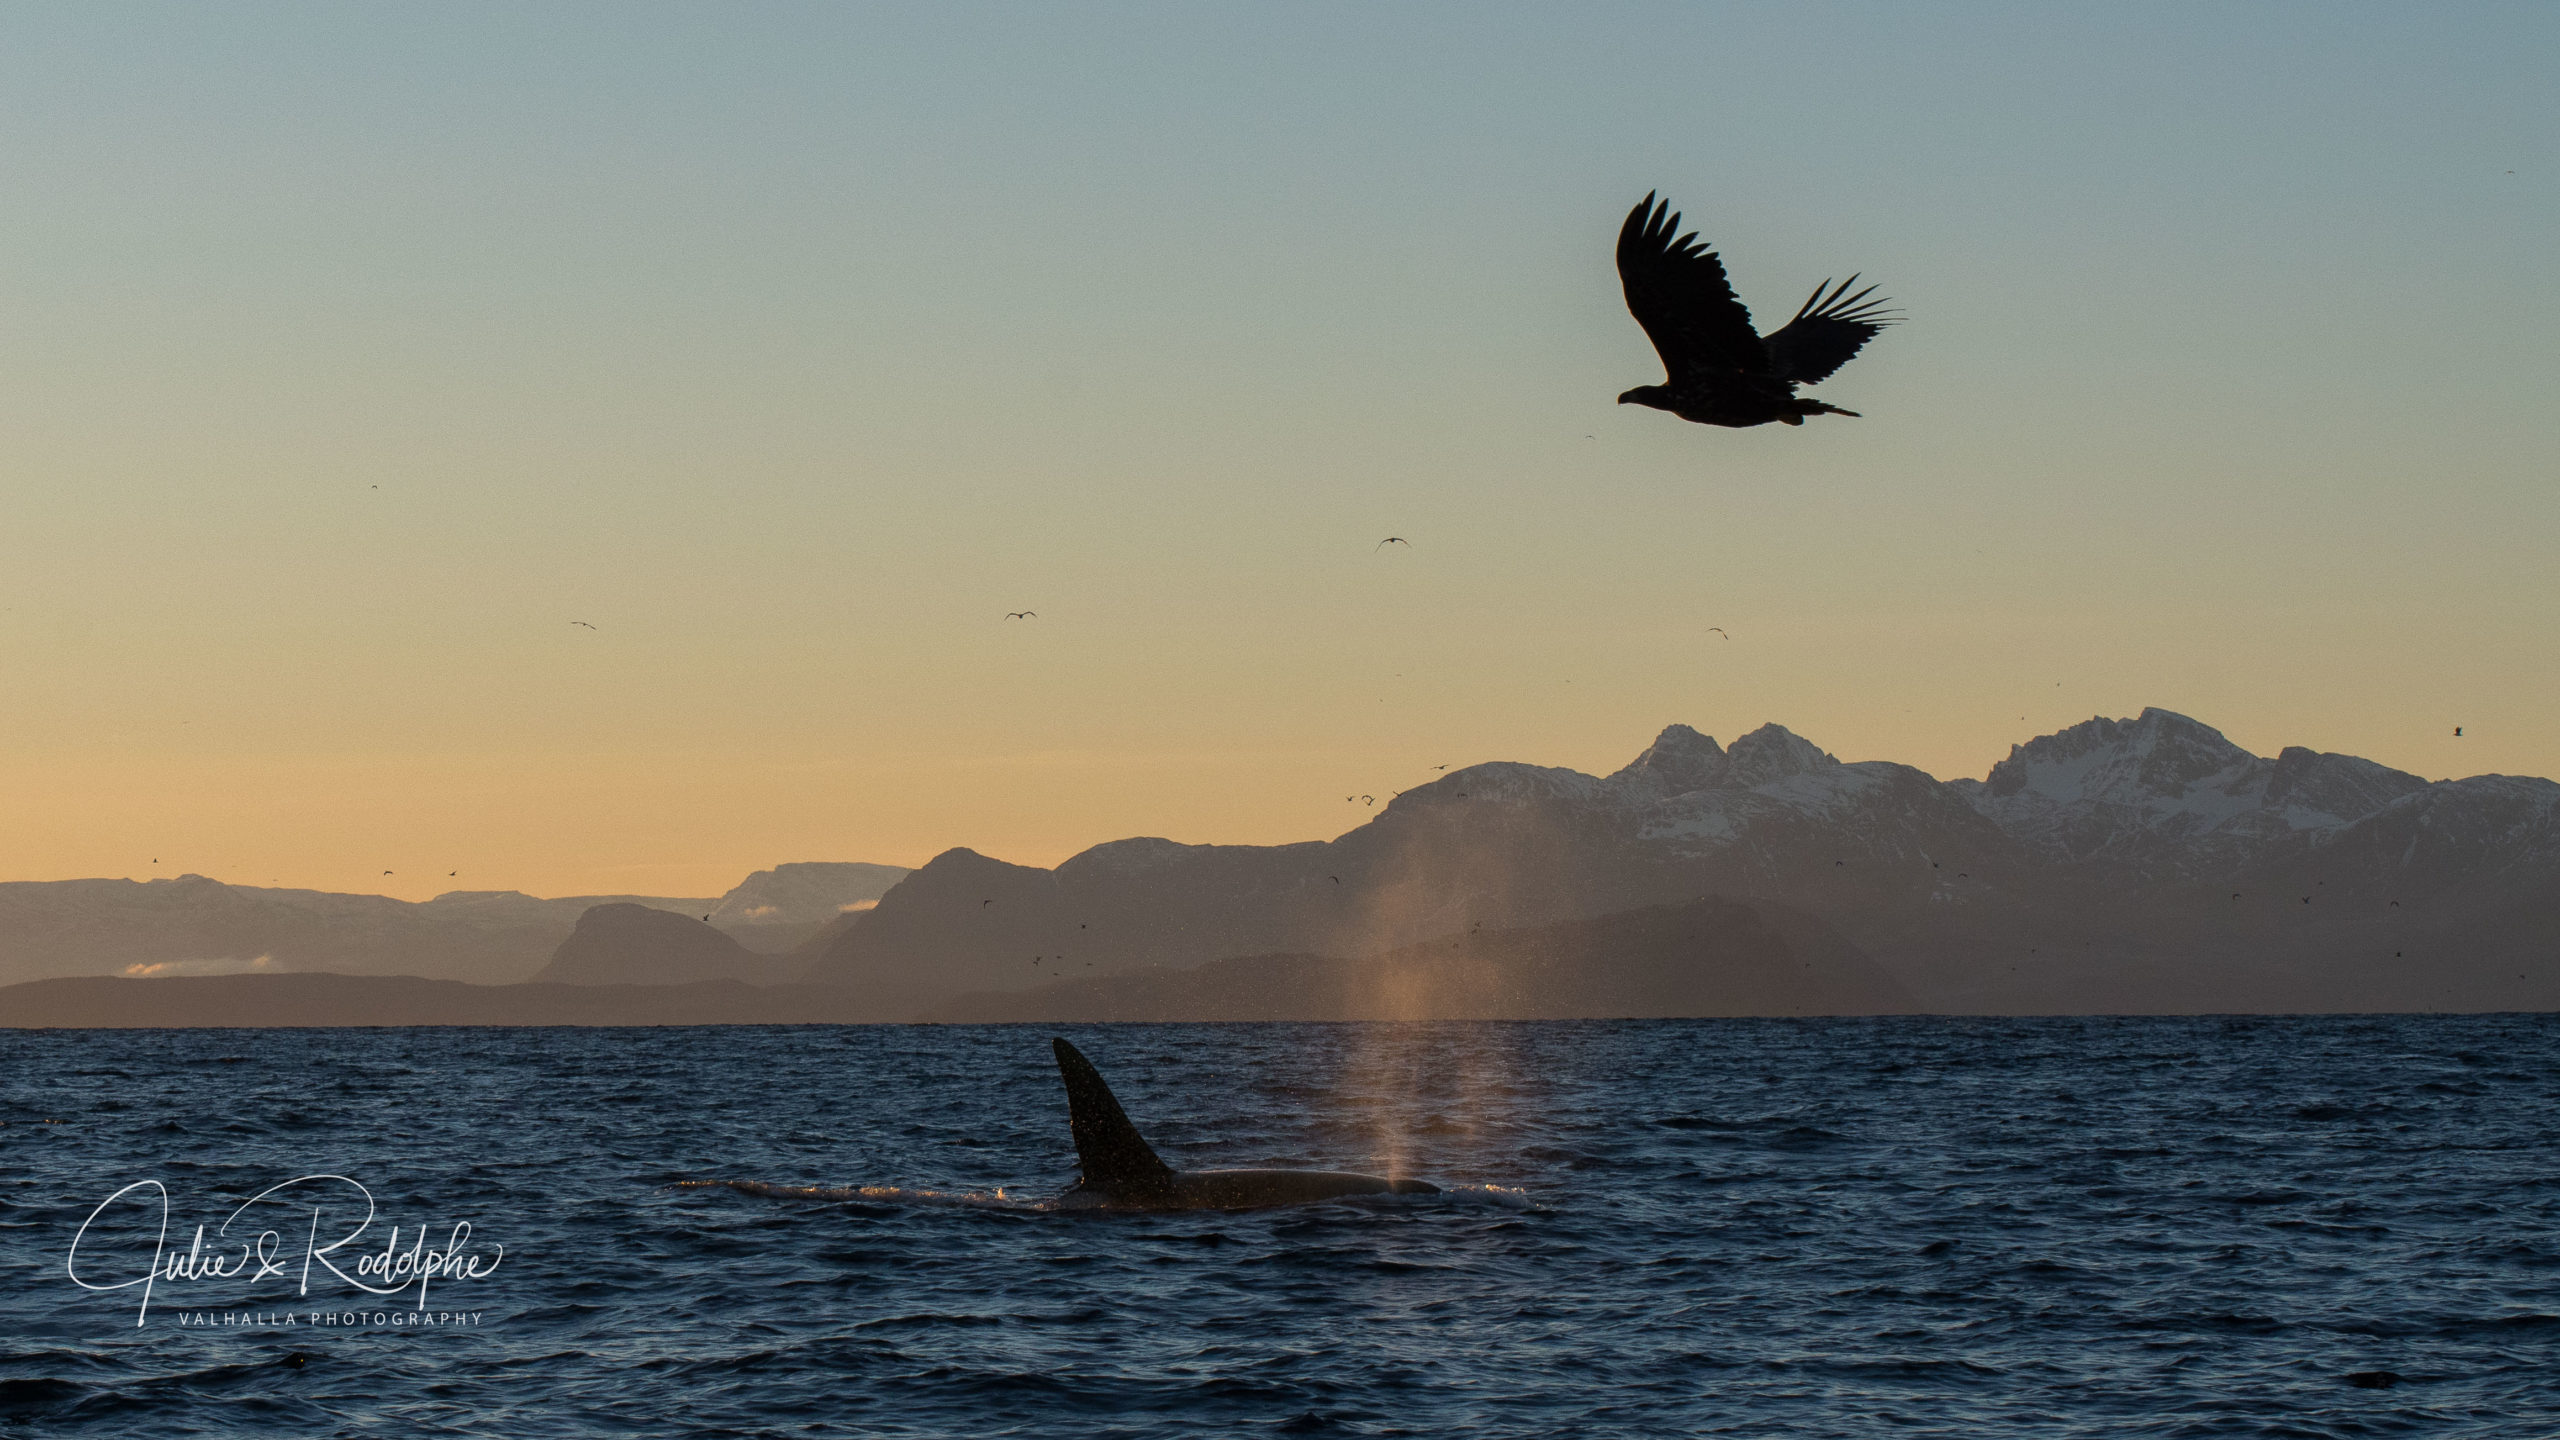 killerwhale with white tailed eagle flying above in fjord wildlife